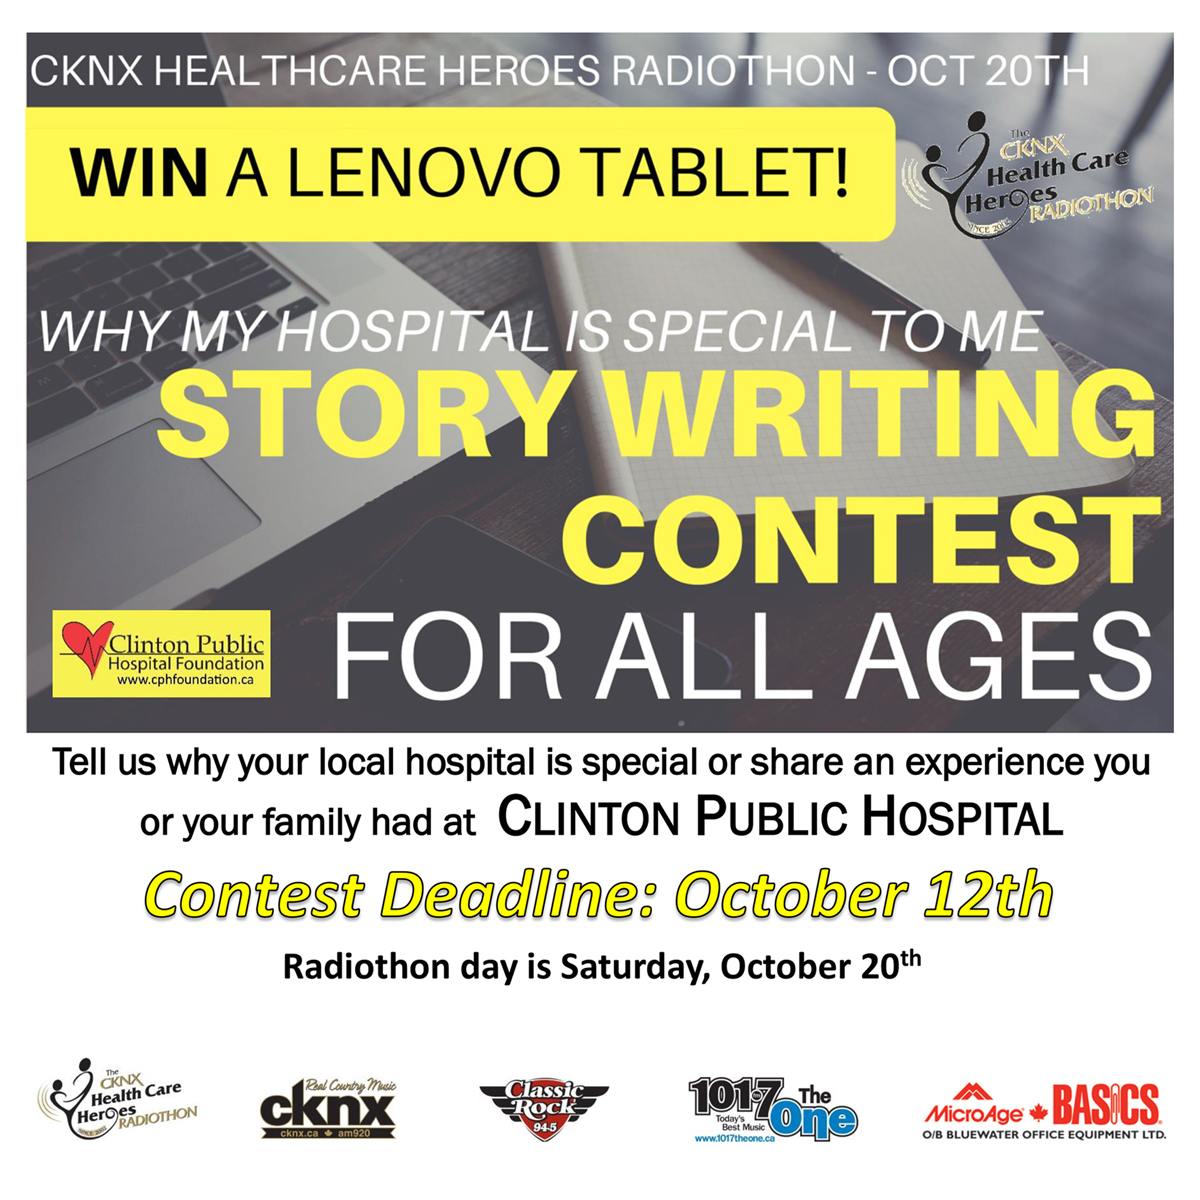 STORY WRITING CONTEST for CKNX Healthcare Heroes Radiothon